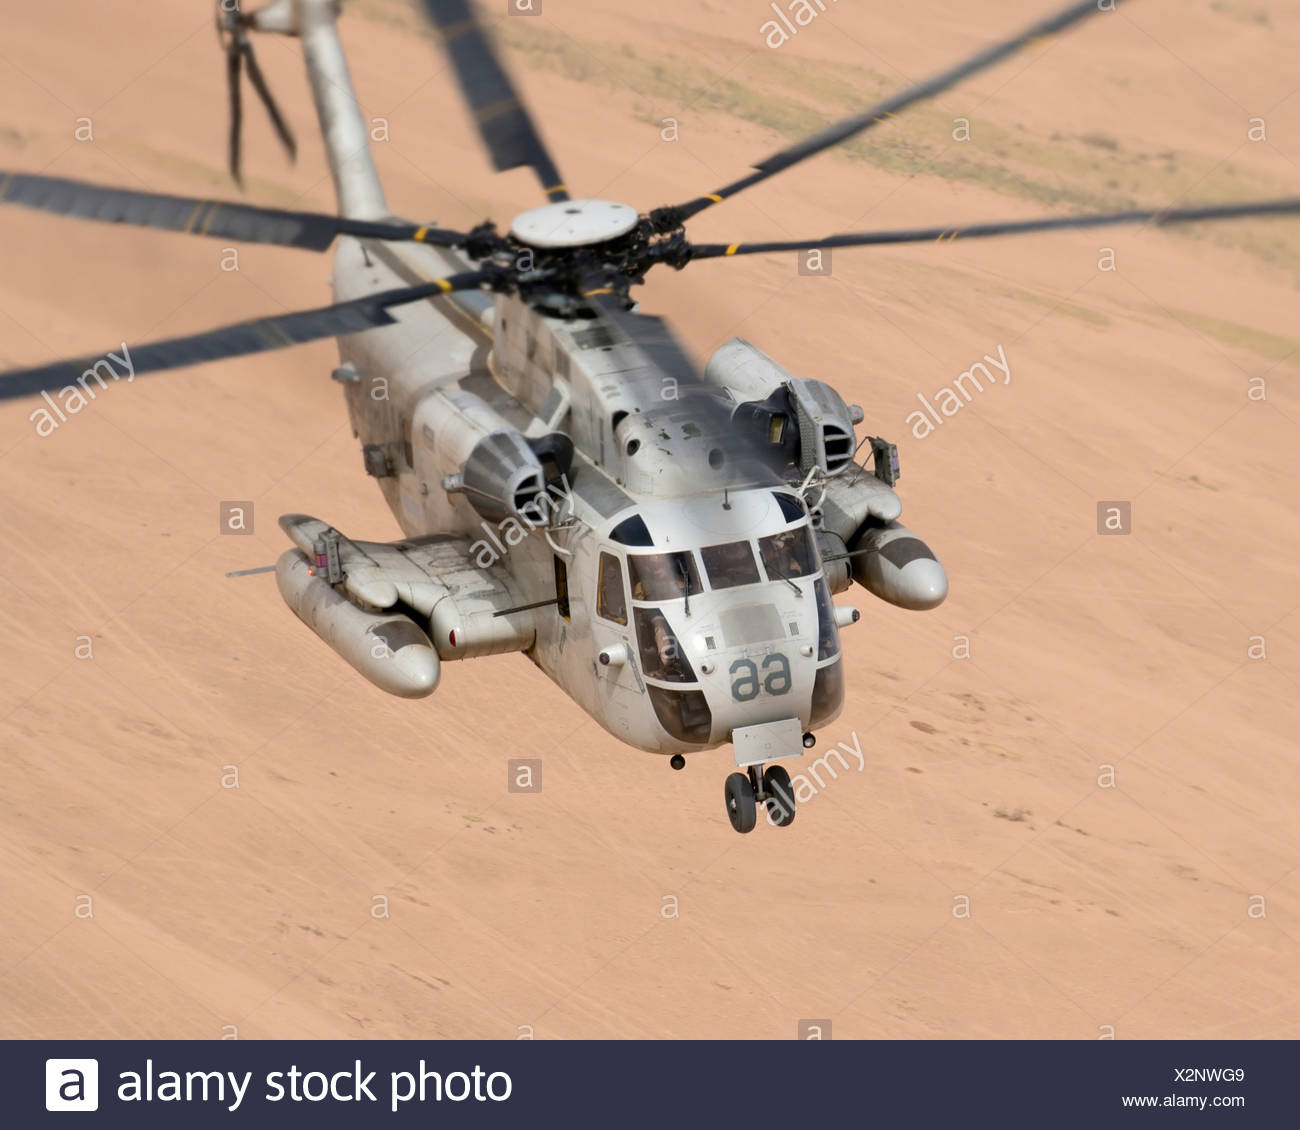 US Marine CH-53D Sea Stallion Helicopter Plies the Air Above the Desert in Iraq's Al Anbar Province - Stock Image